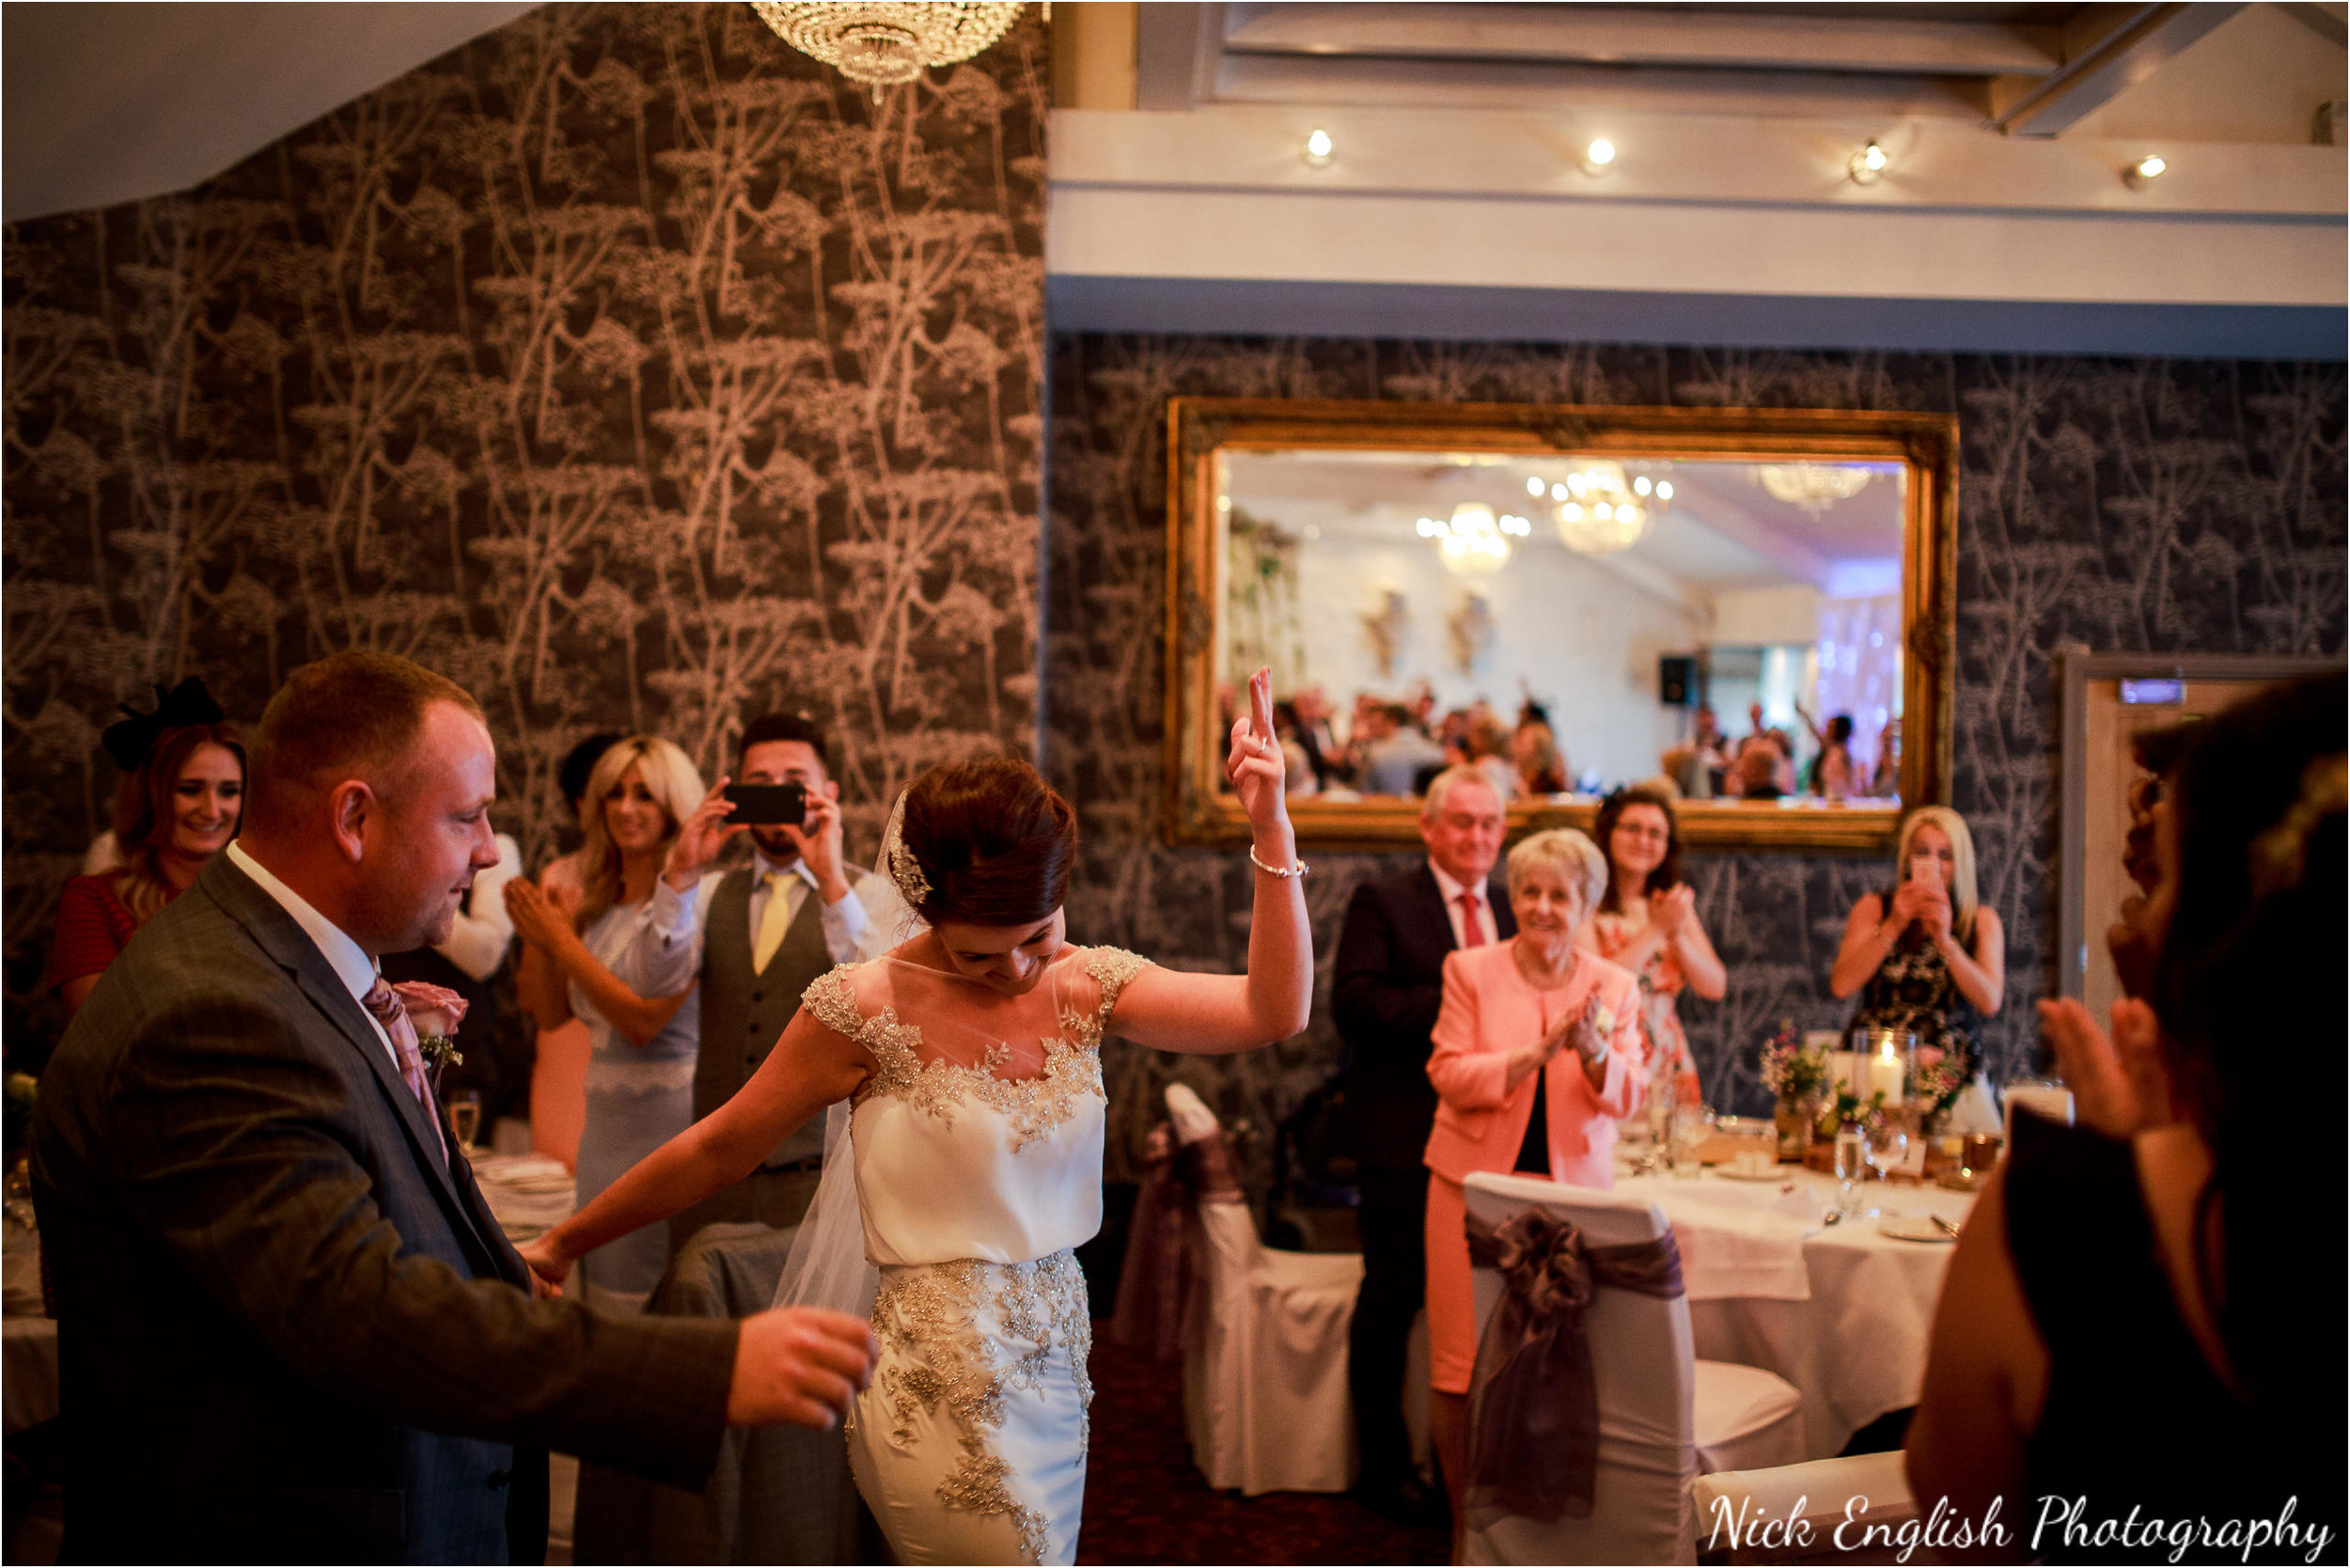 Stacey-Ash-Wedding-Photographs-Stanley-House-Preston-Lancashire-145.jpg